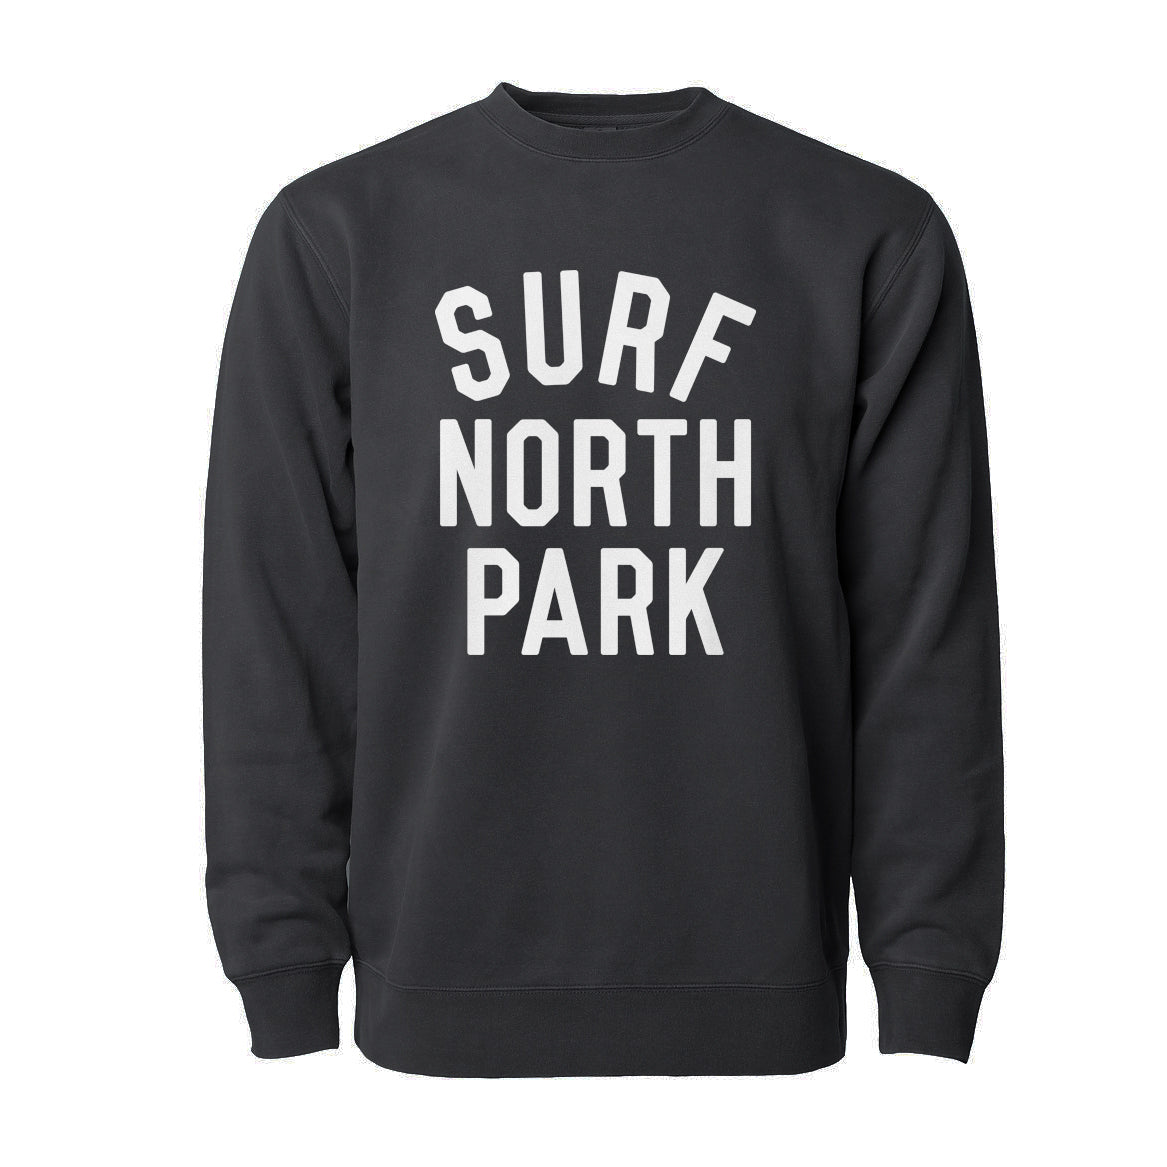 Aloha Beach Club - Surf North Park Faded Black Sweatshirt - Aloha Beach Club